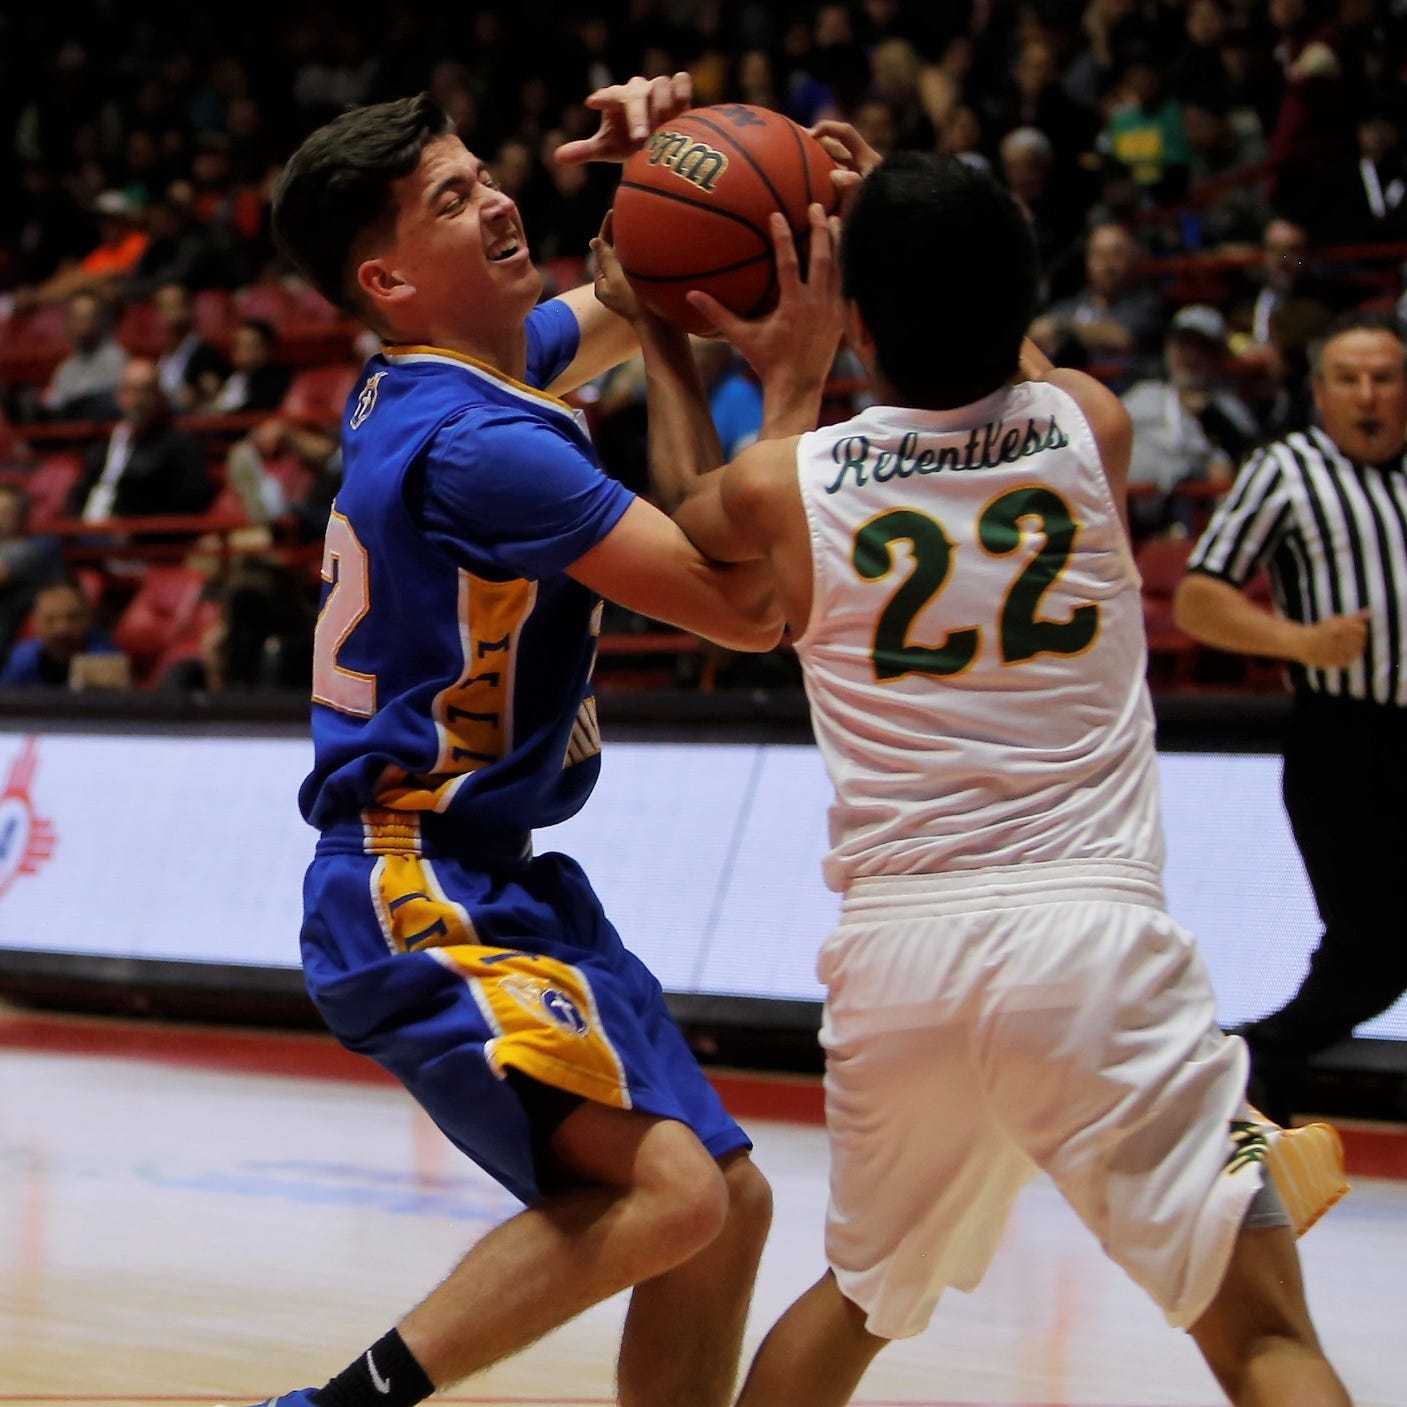 Deondre Begay last-second layup lifts Newcomb into state title game